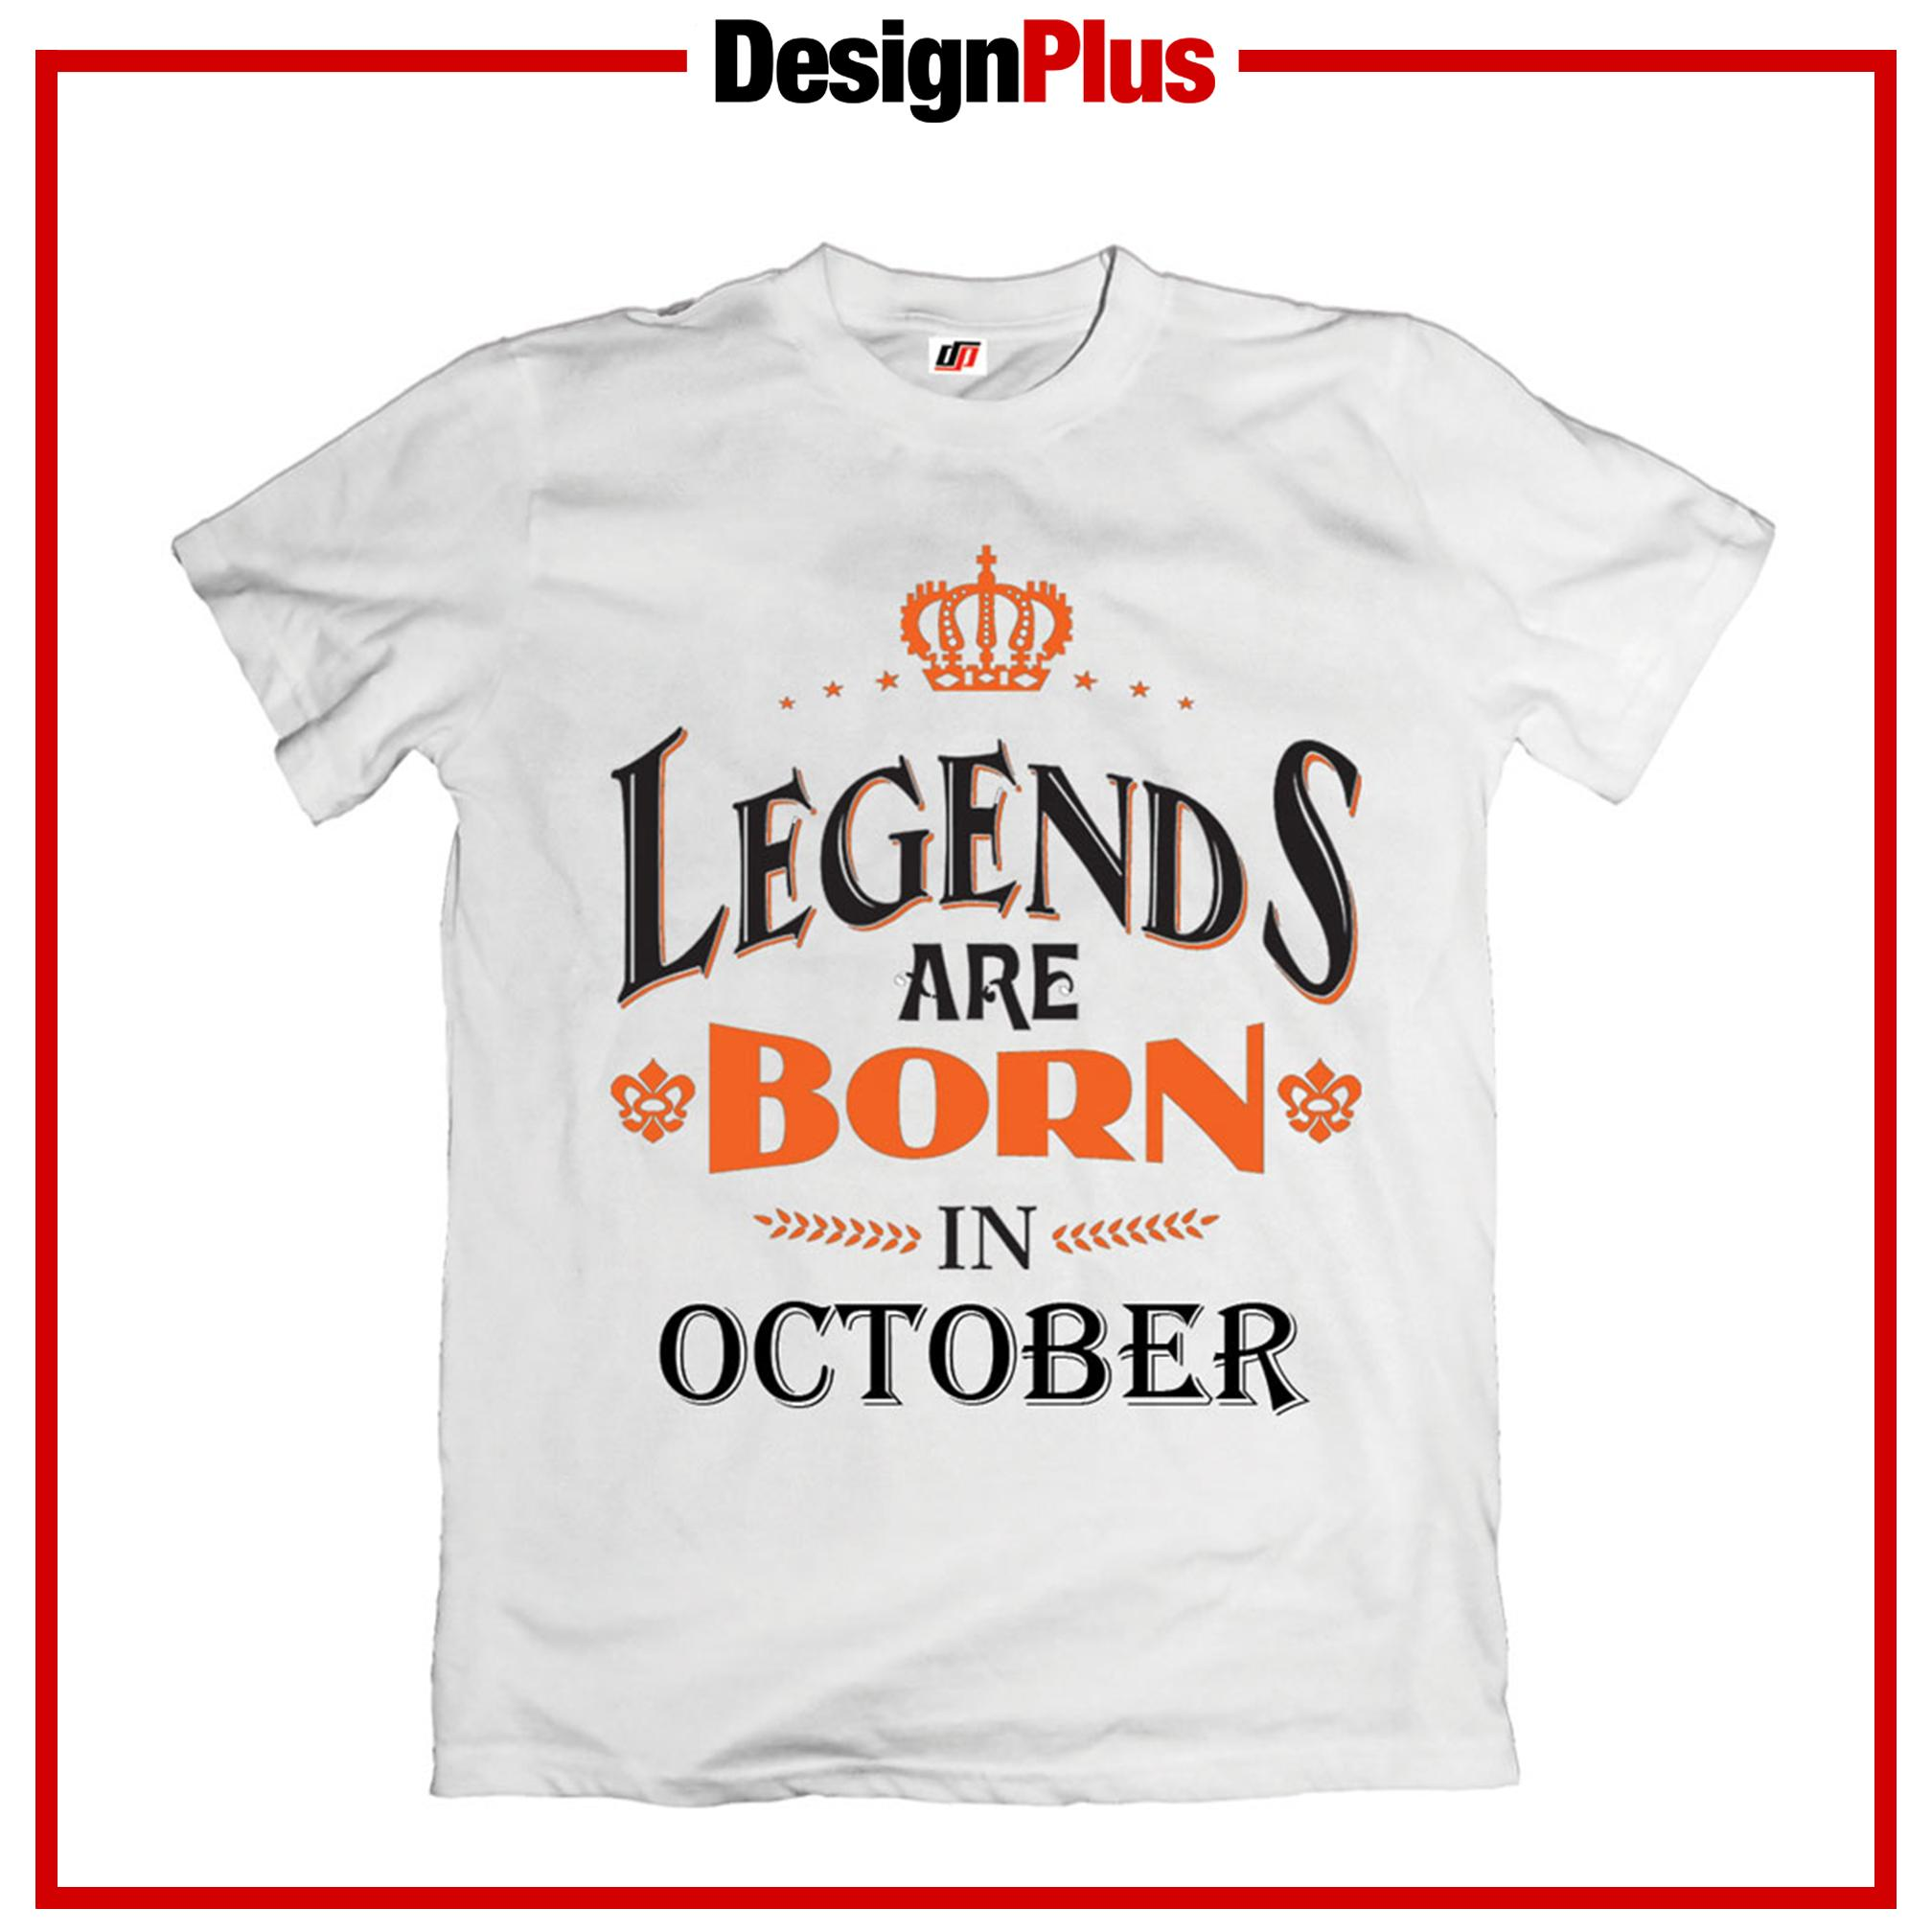 DesignPlus Legends Are Born In October Statement T Shirt Birthday Collection